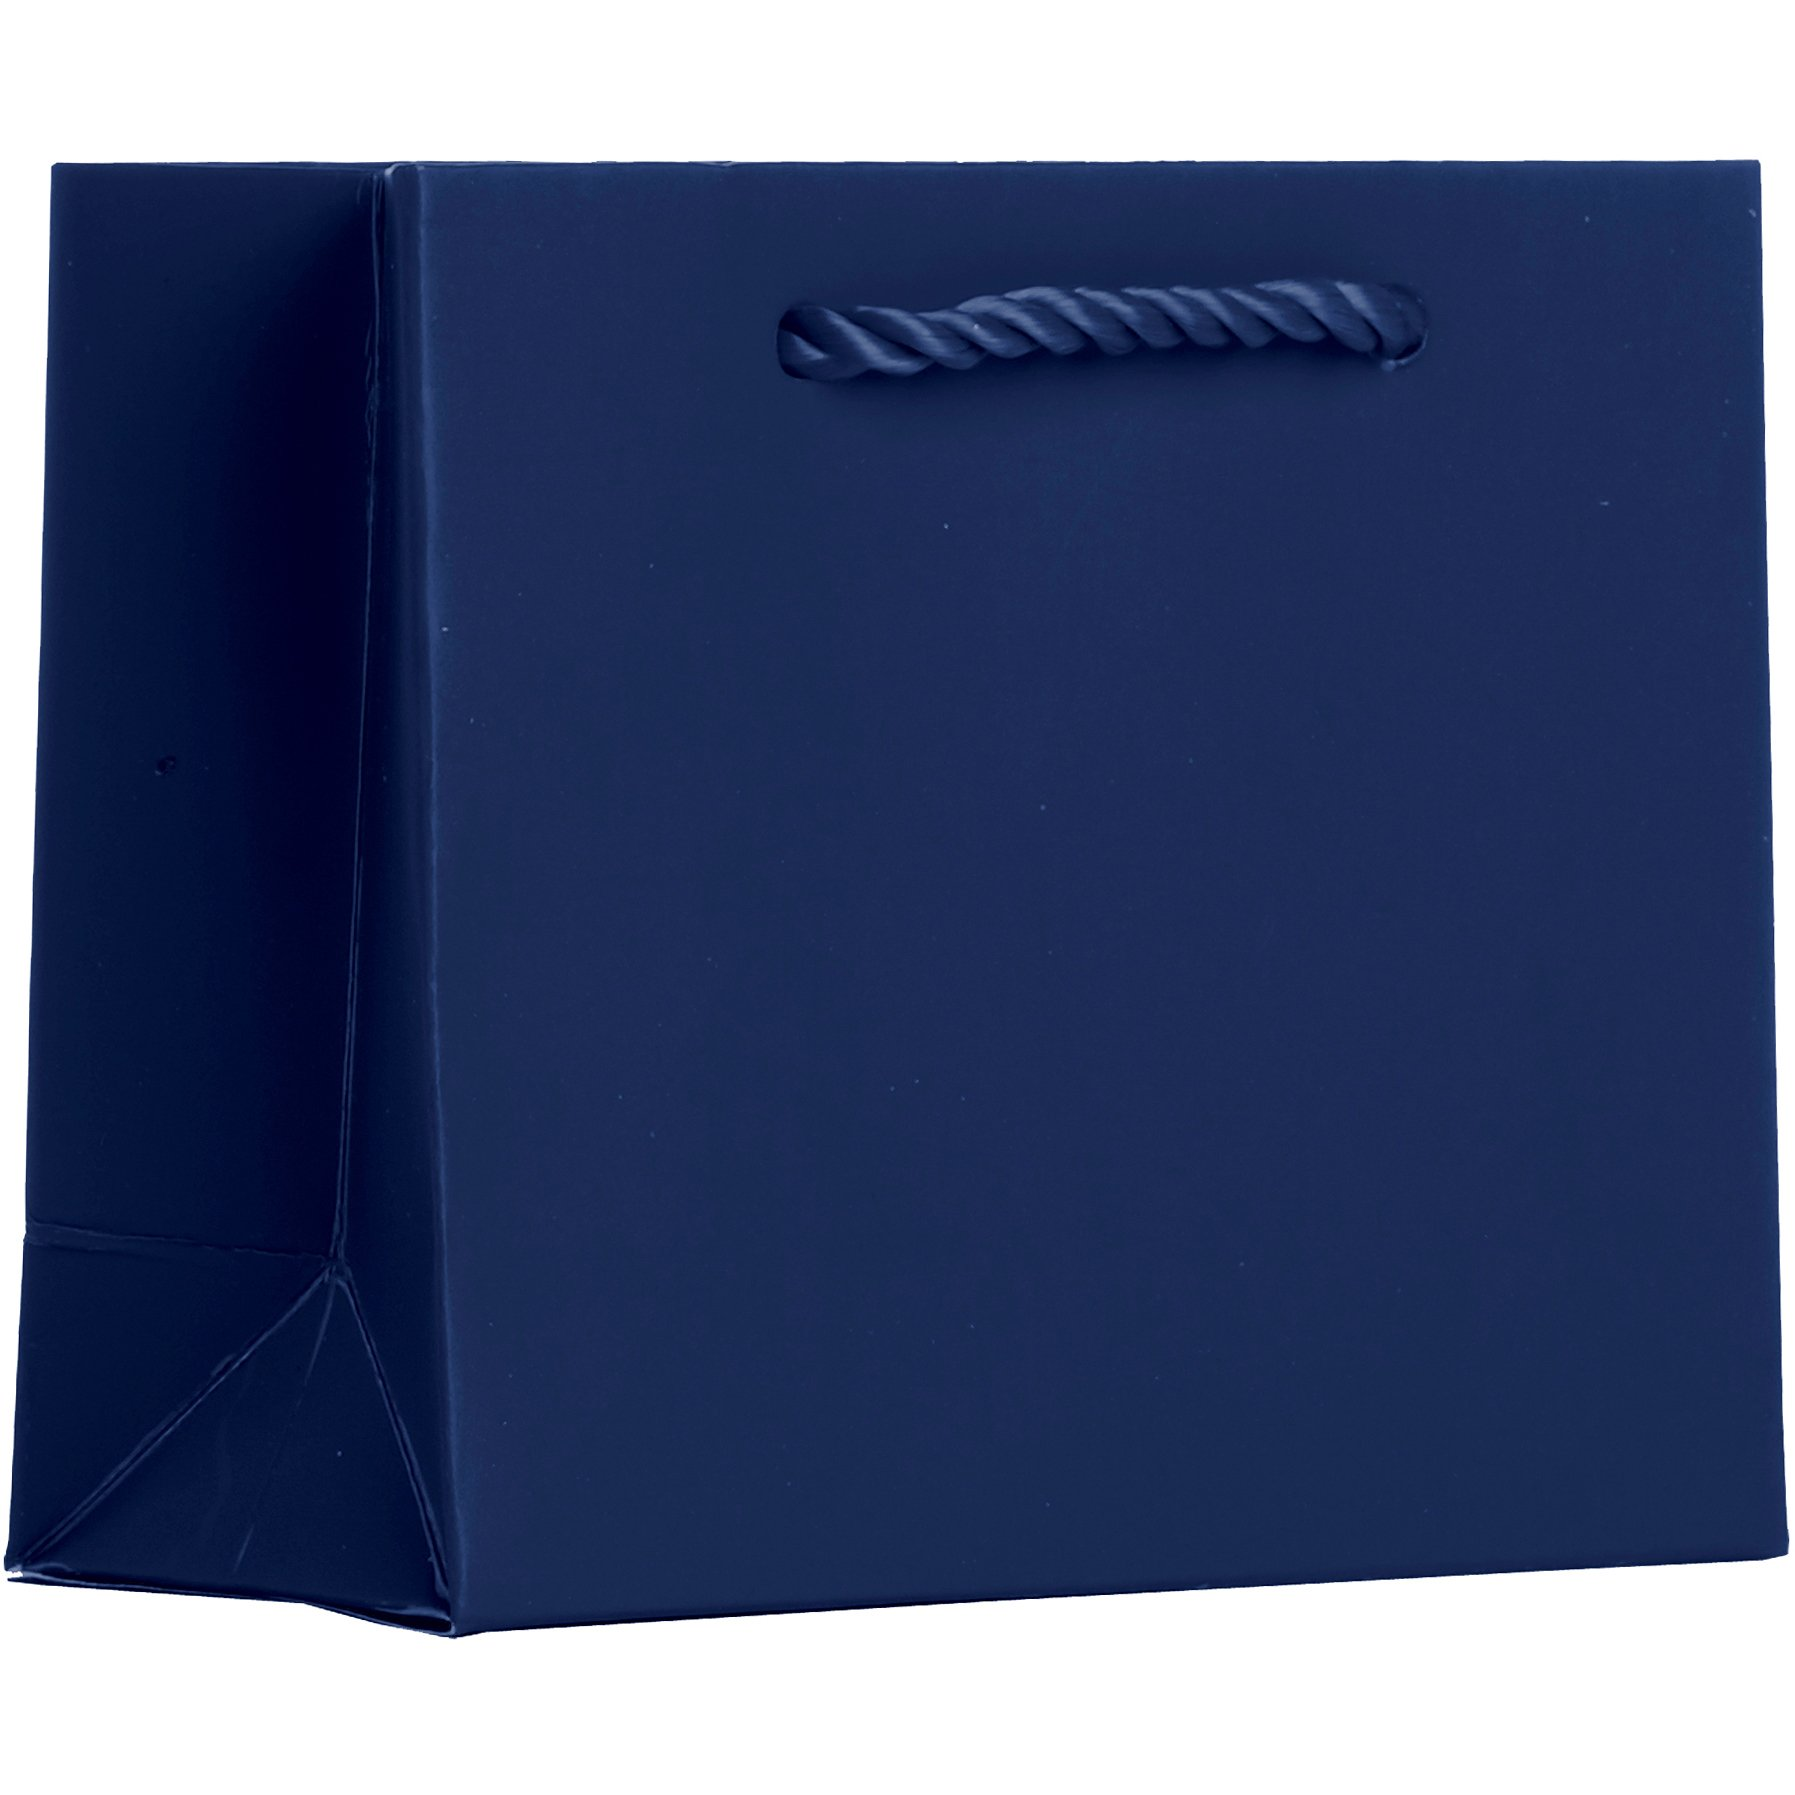 Jillson Roberts BTT926.1 Bulk 120-Count Tiny Tote 5'' x 4'' x 2'' Matte-Finish Gift Bags Available in 13 Colors, Navy Blue